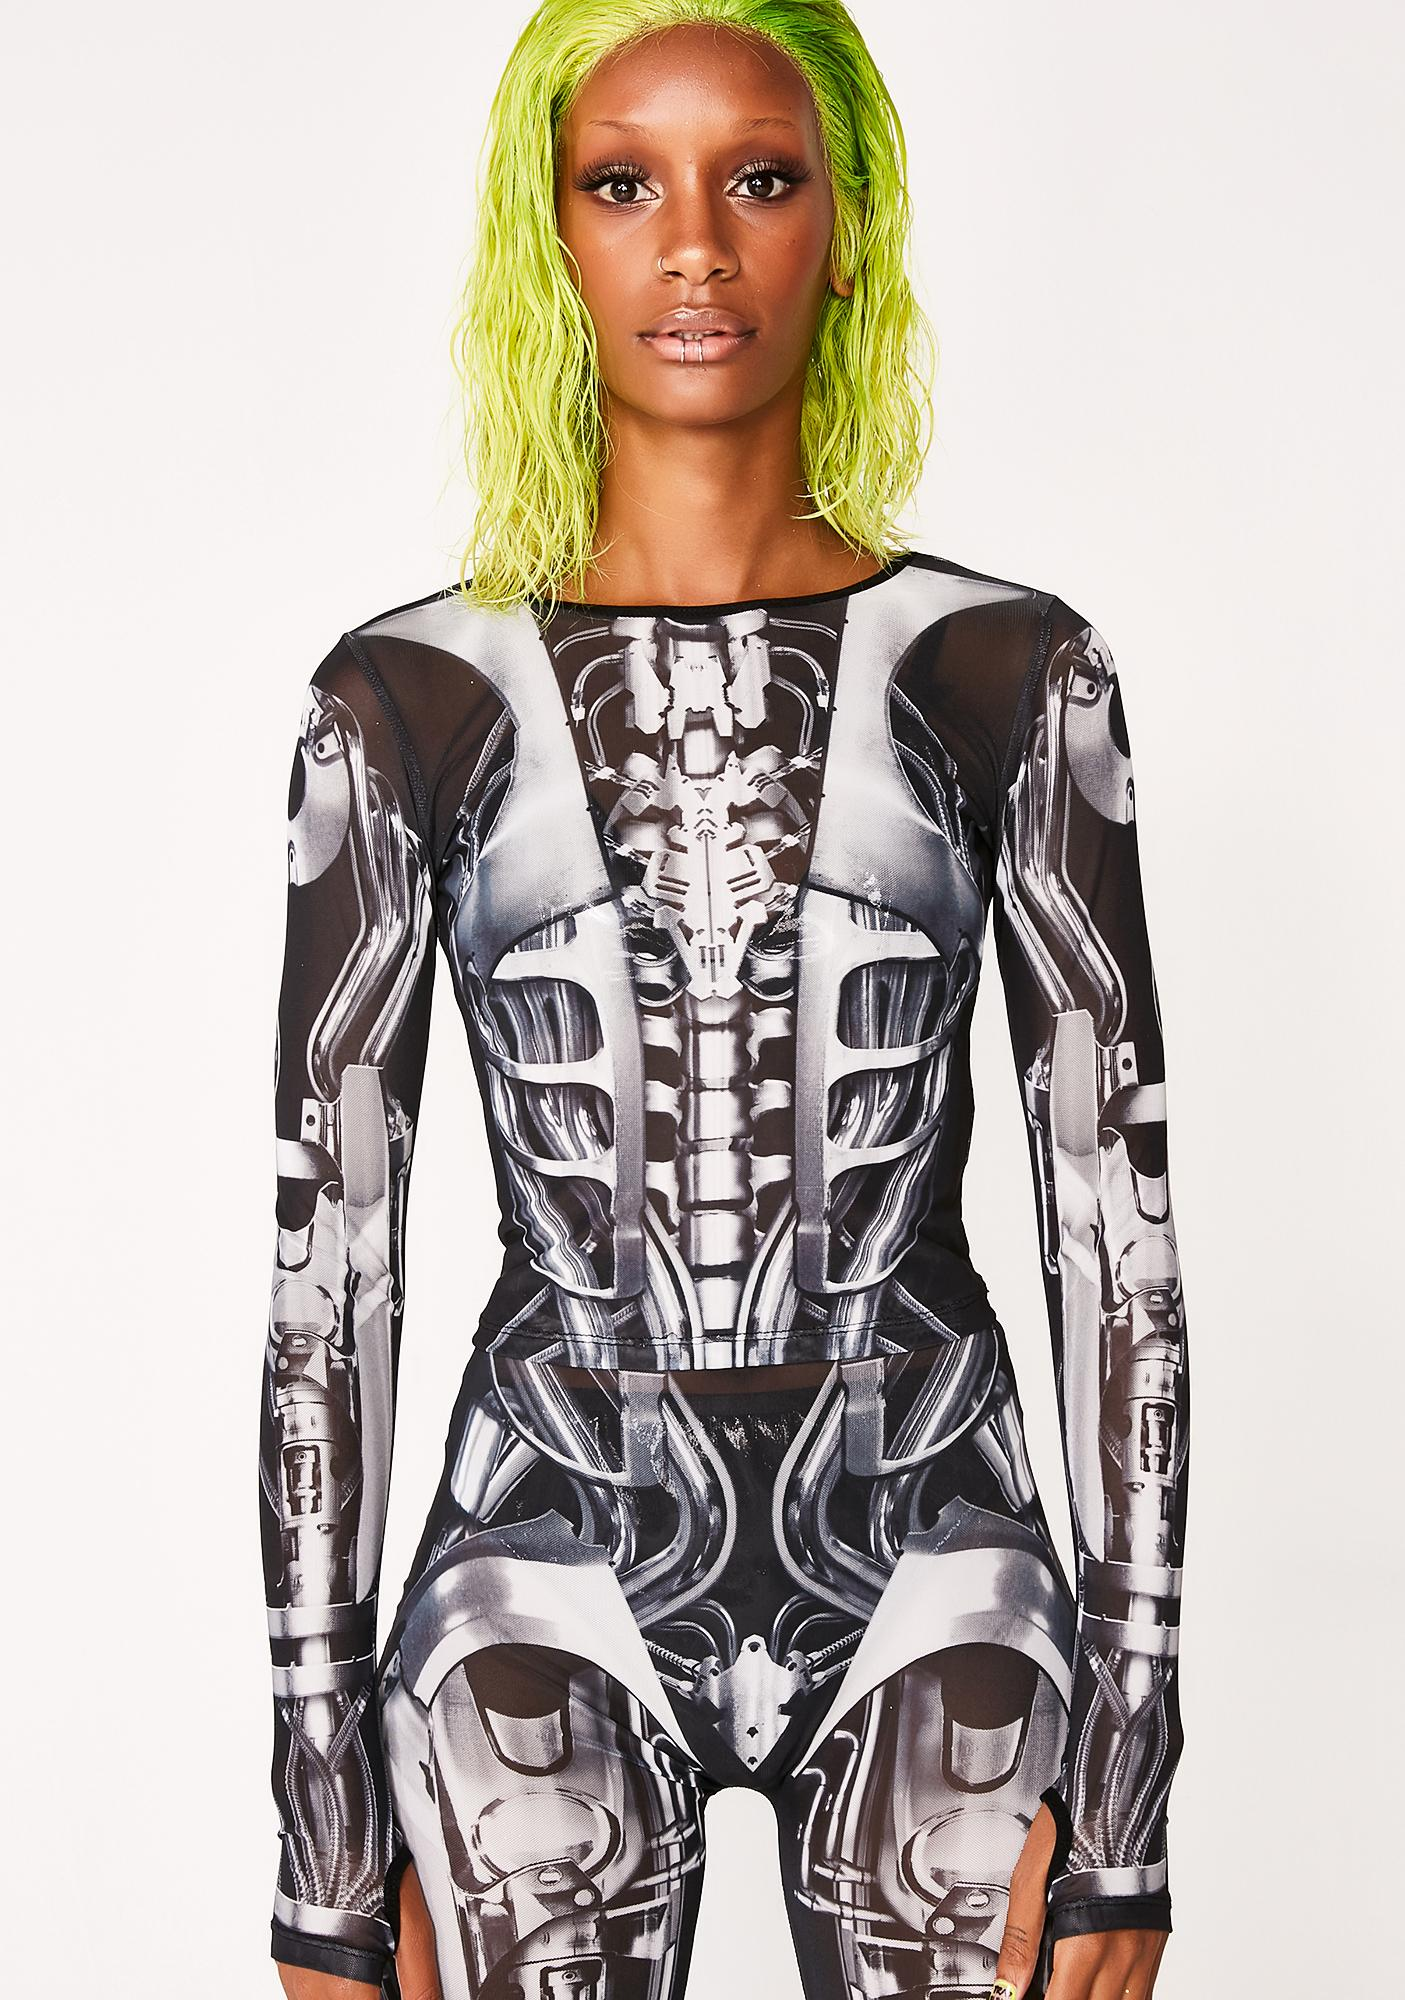 Club Exx Exx Machina Long Sleeve Top